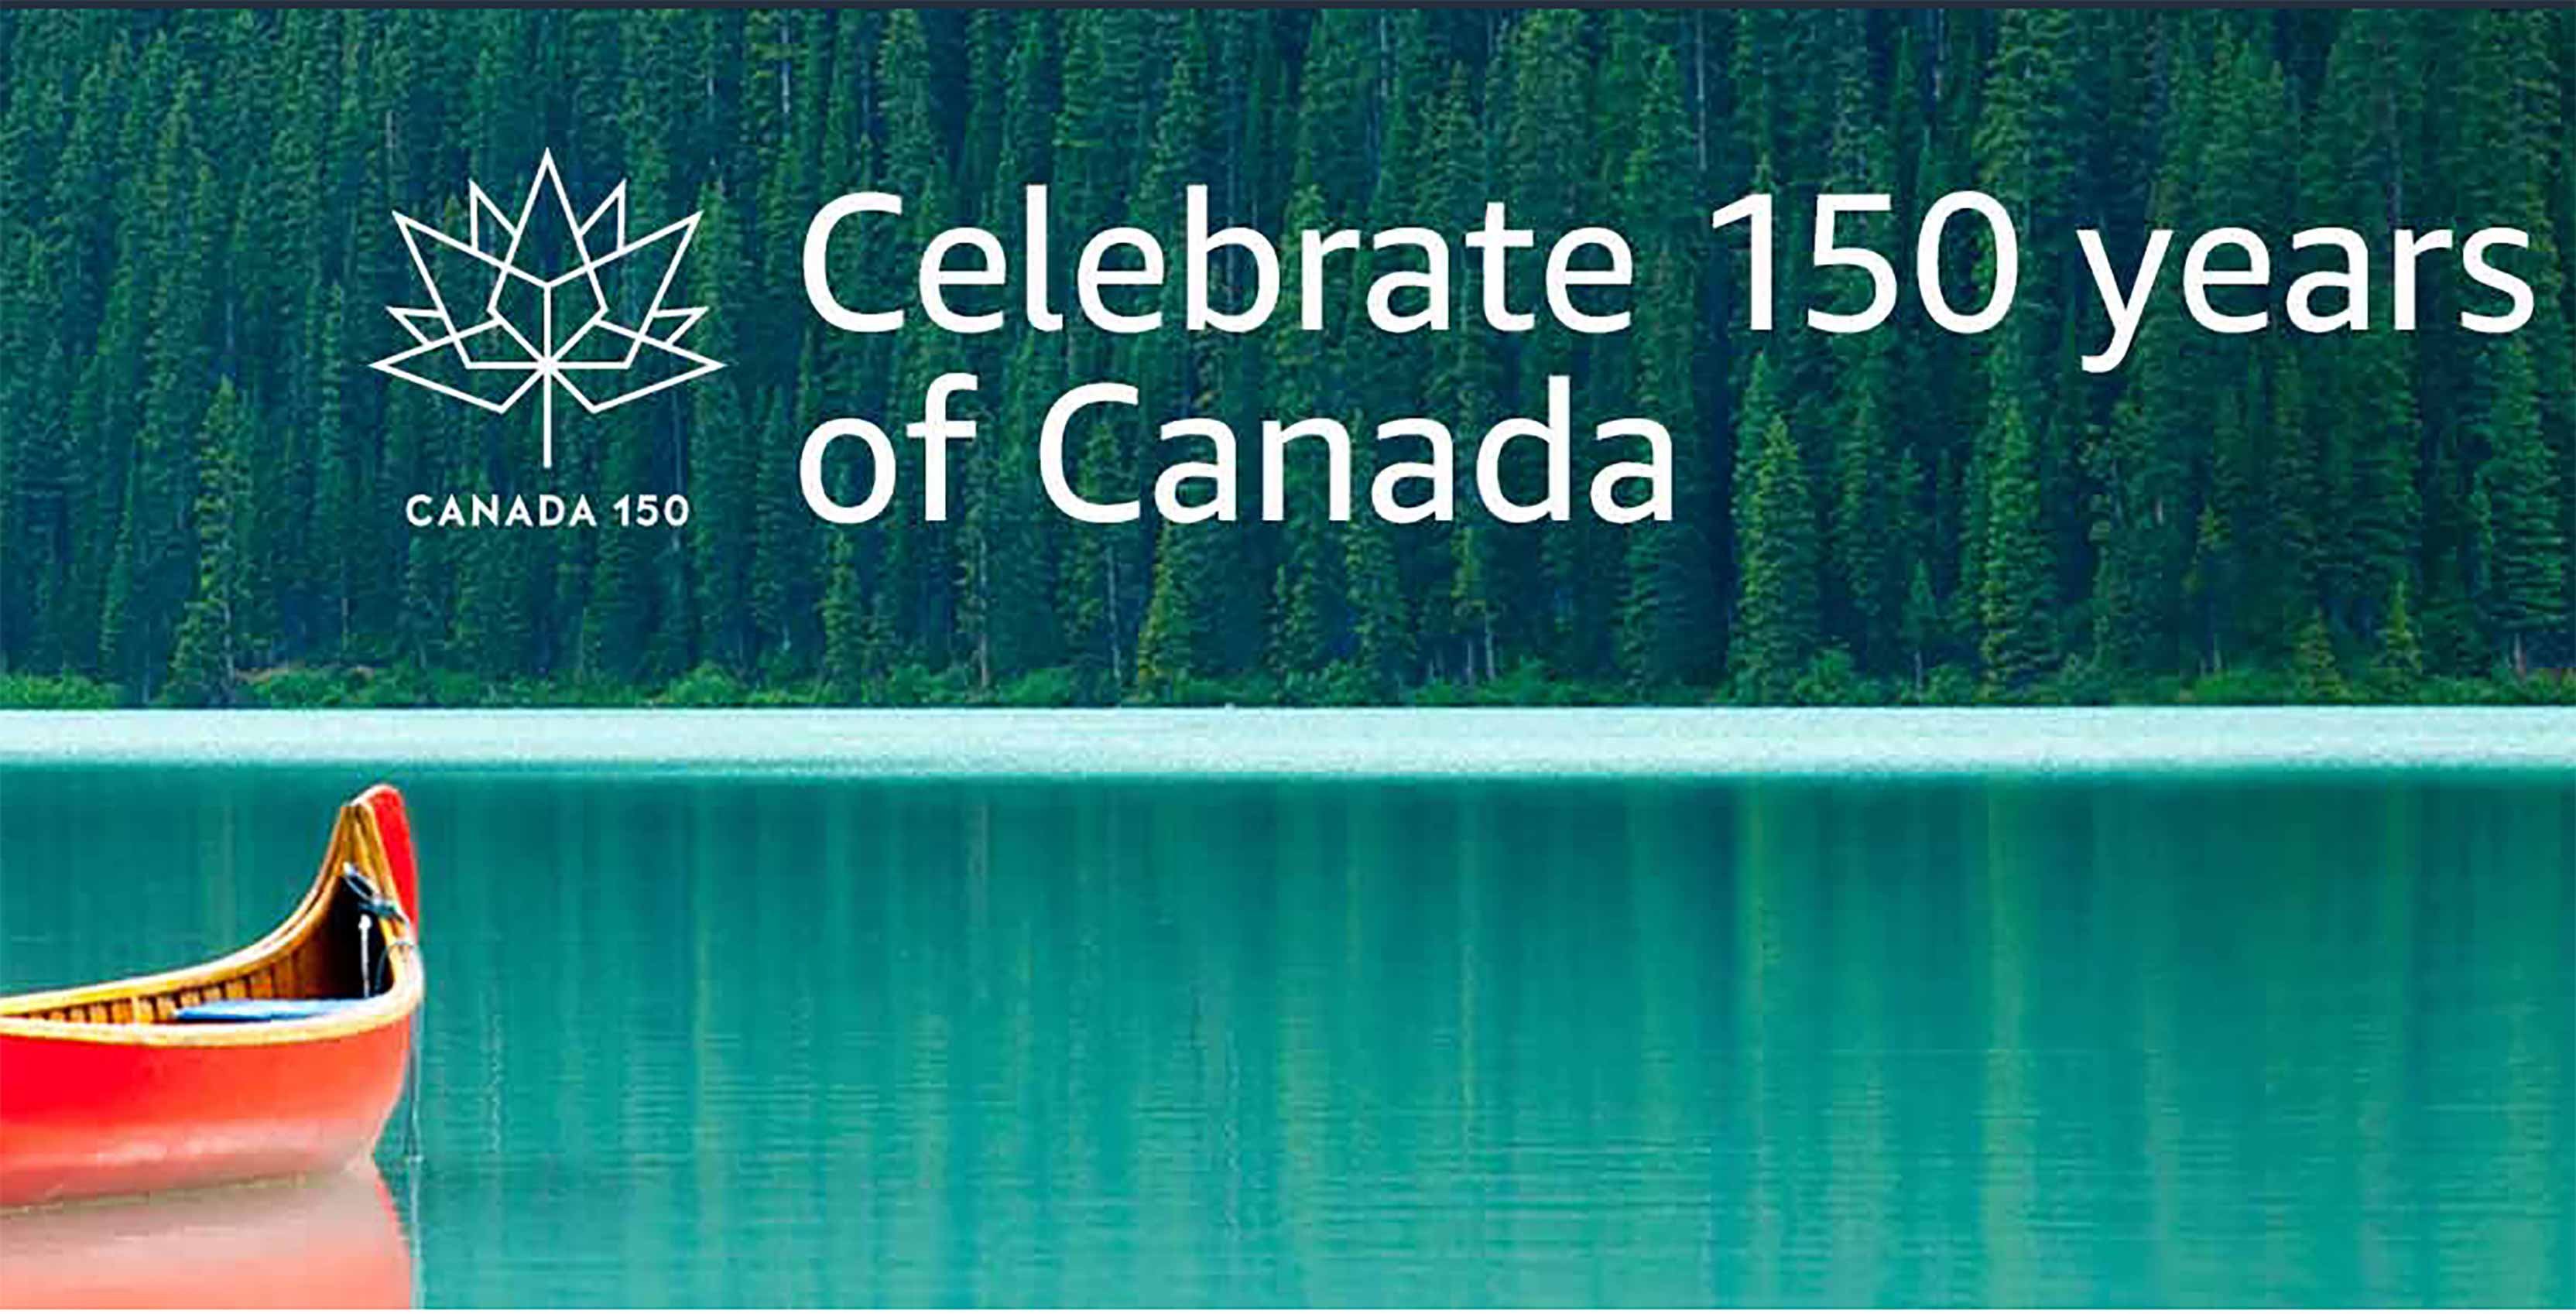 Celebrate 150 years of Canada